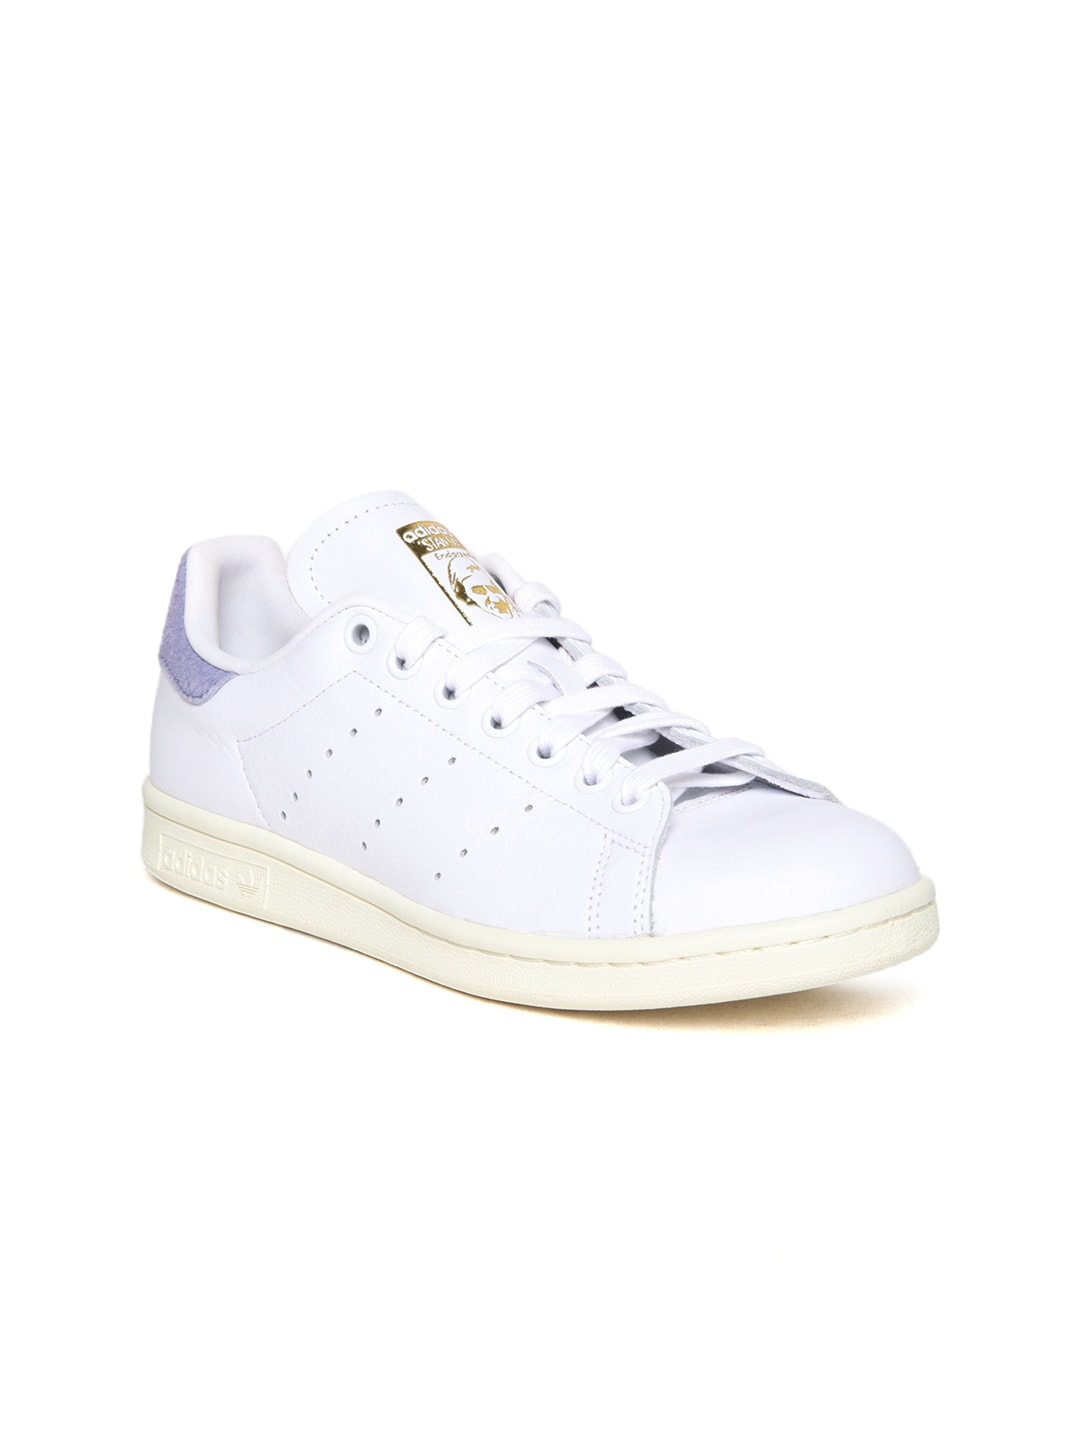 Adidas Originals Women White Stan Smith Leather Sneakers image